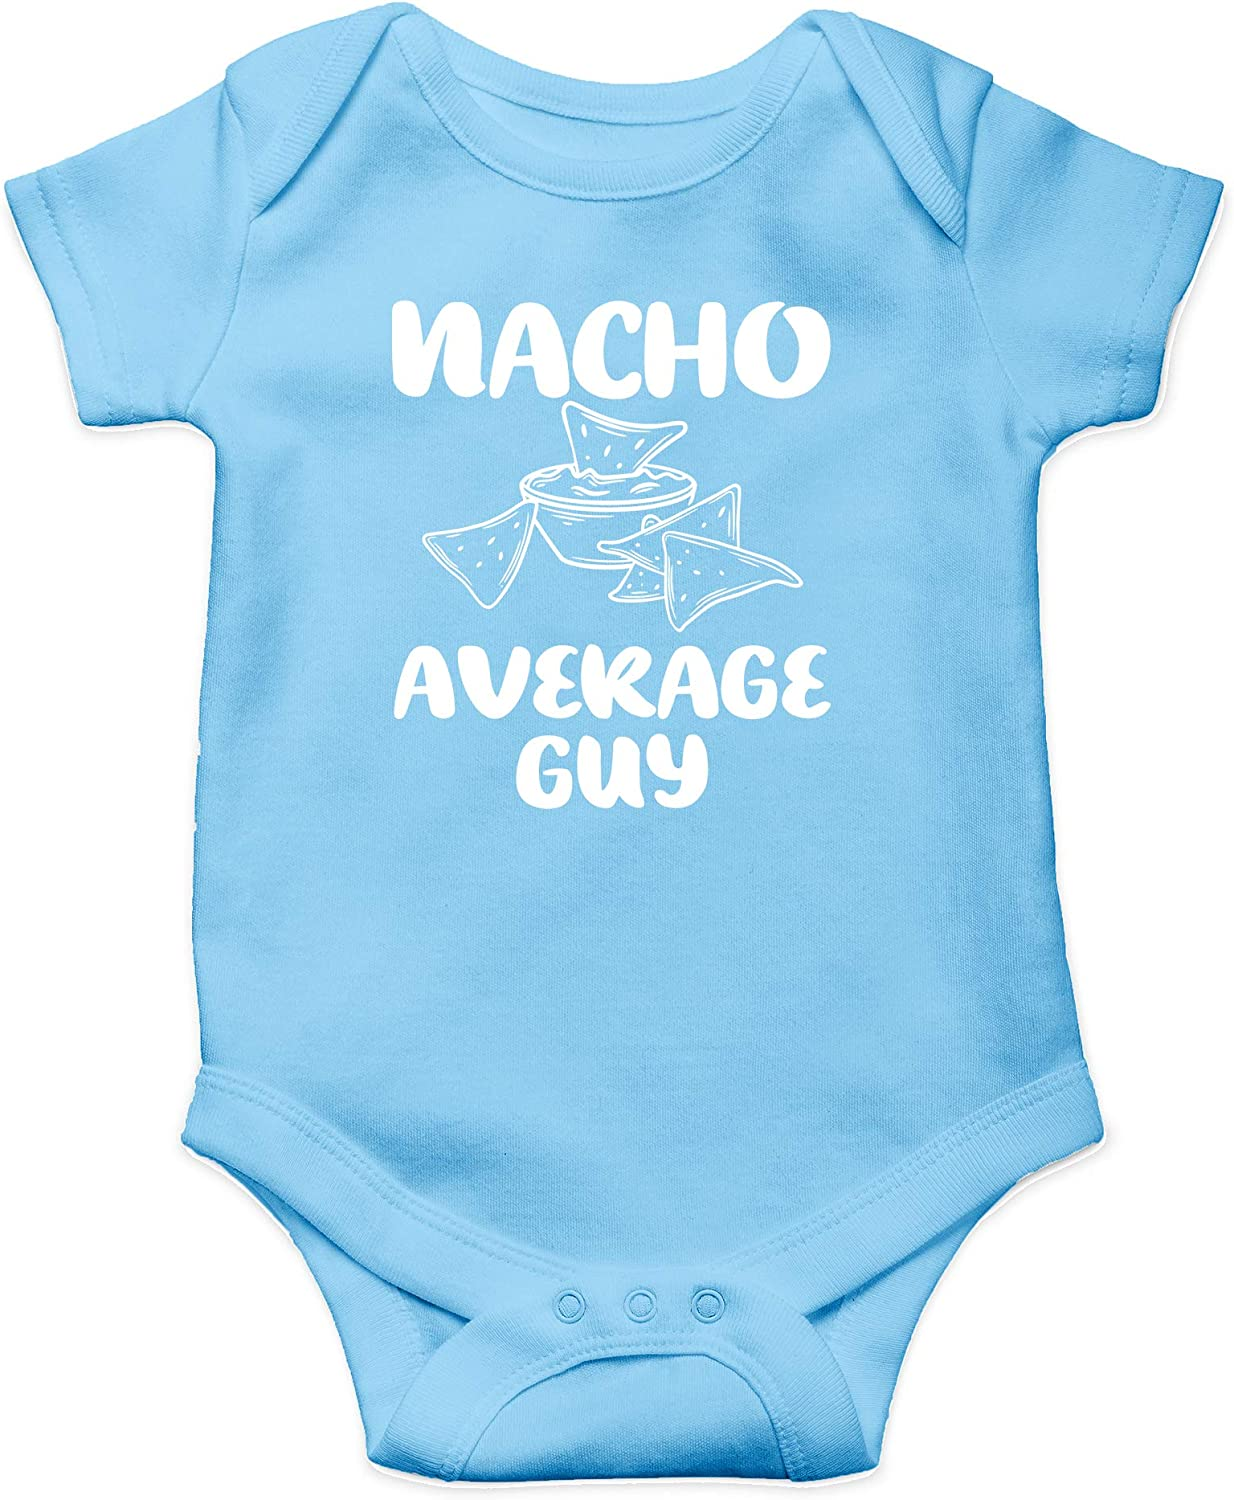 AW Fashions Nacho Average Guy - Funny Spanish Food Pun - Taco 'Bout Cute - Cute One-Piece Infant Baby Bodysuit